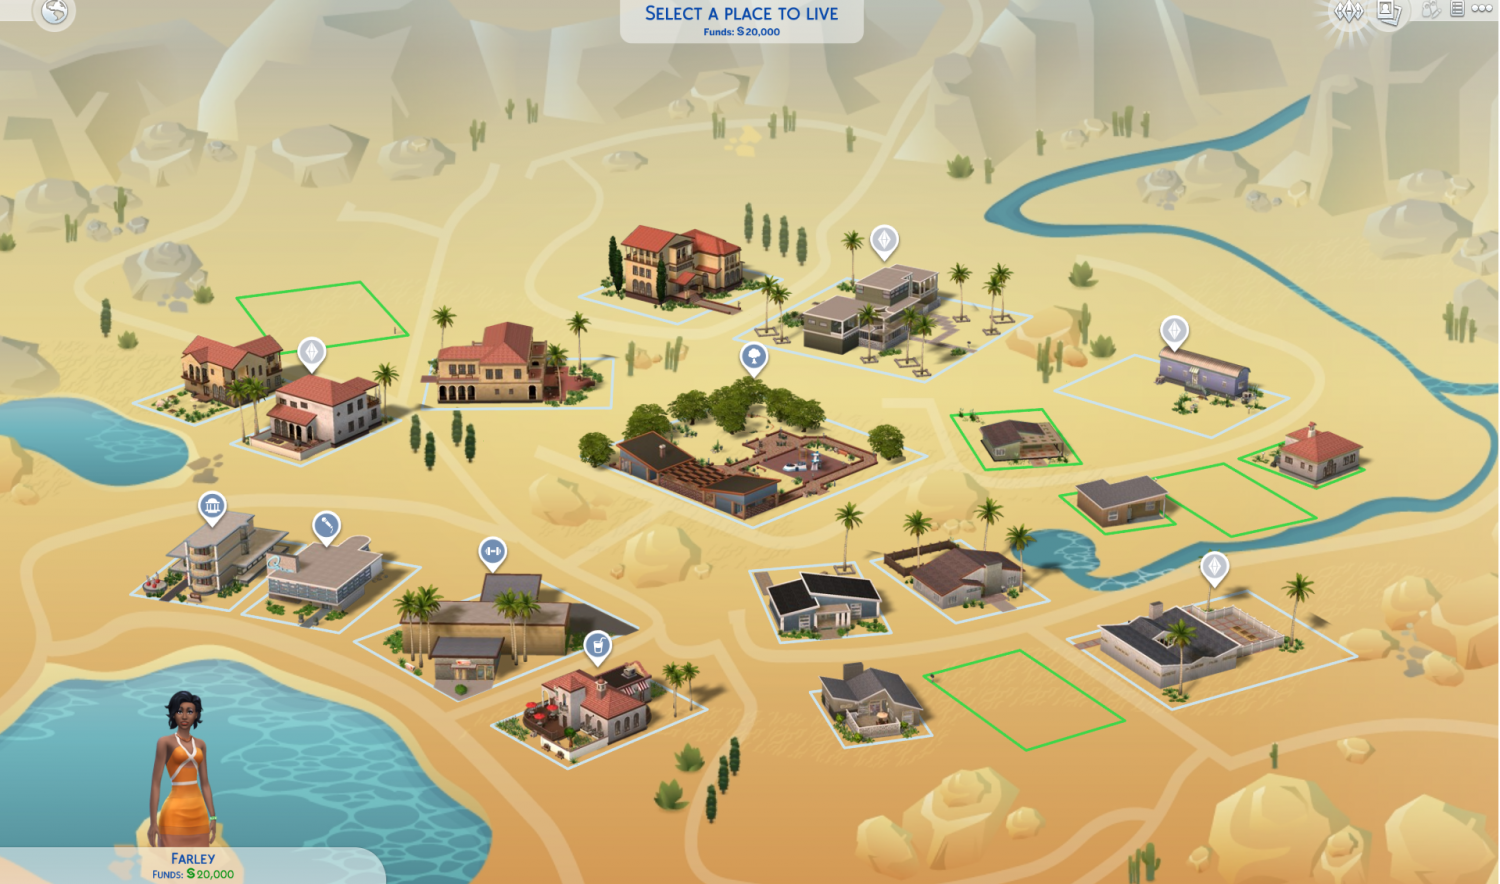 Oasis_Springs_Map_Select_2859854